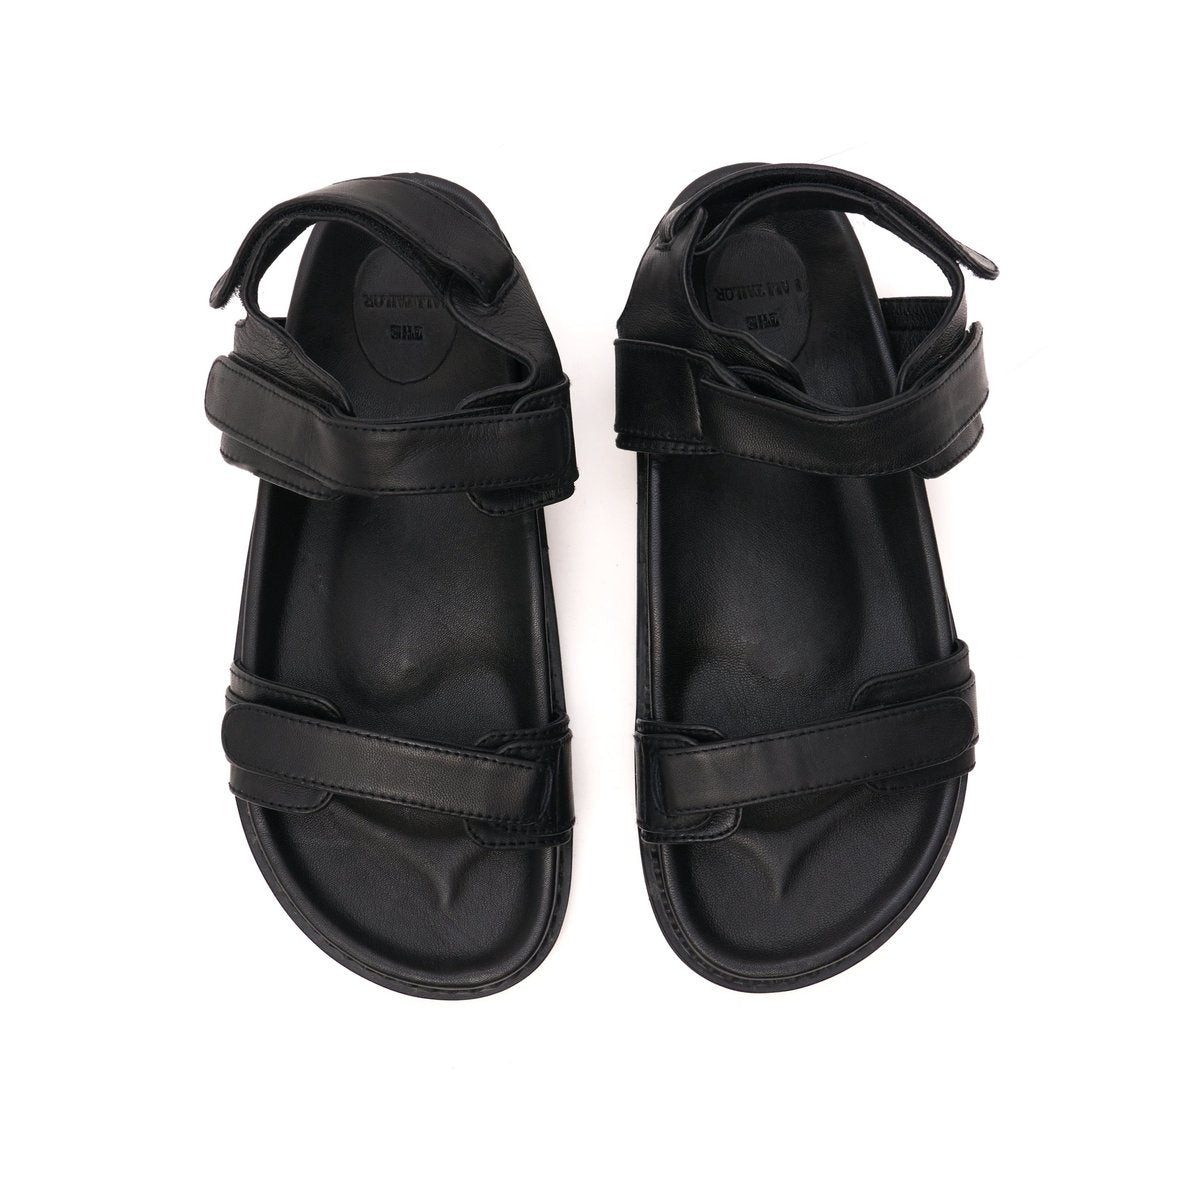 The Marli Sandal - Black